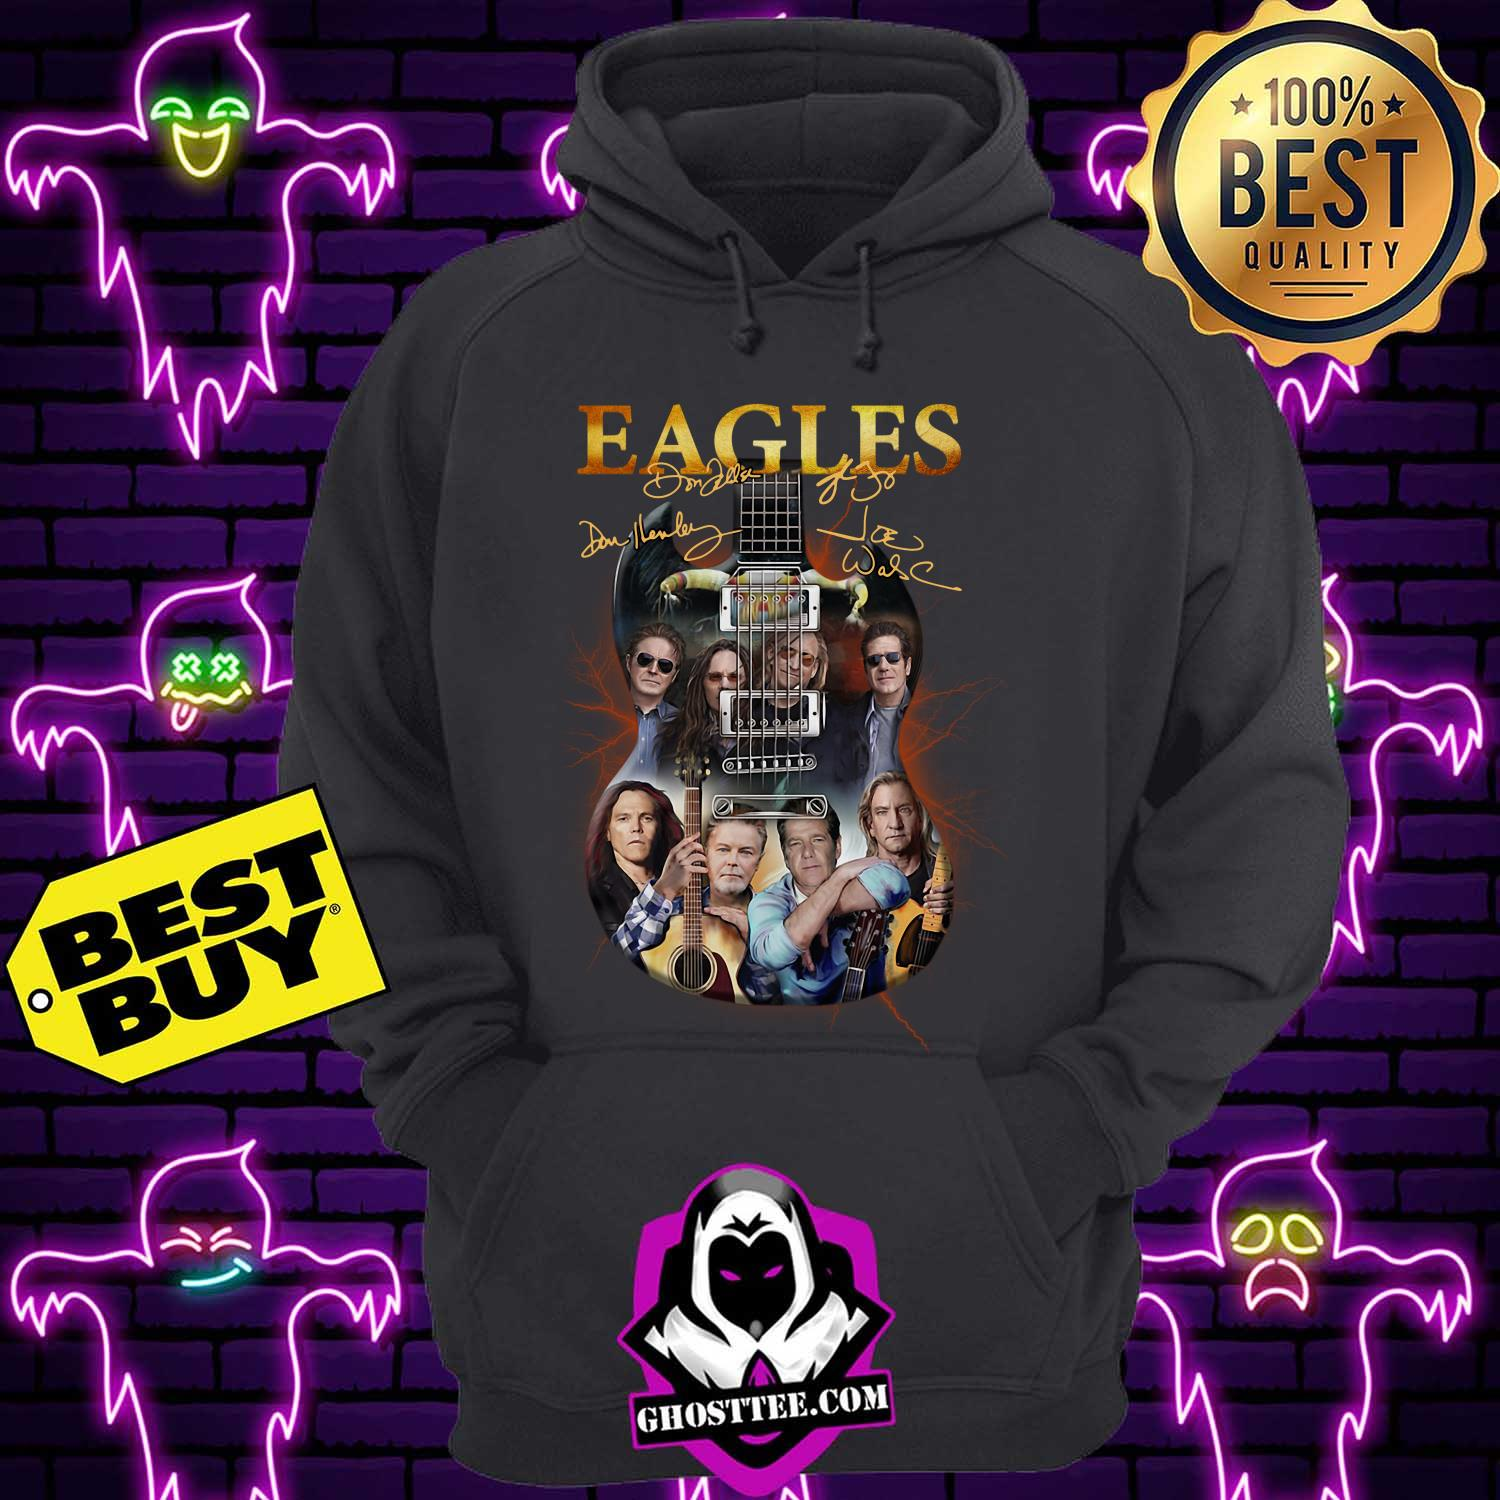 eagles band guitar signature hoodie - Eagles Band guitar signature shirt